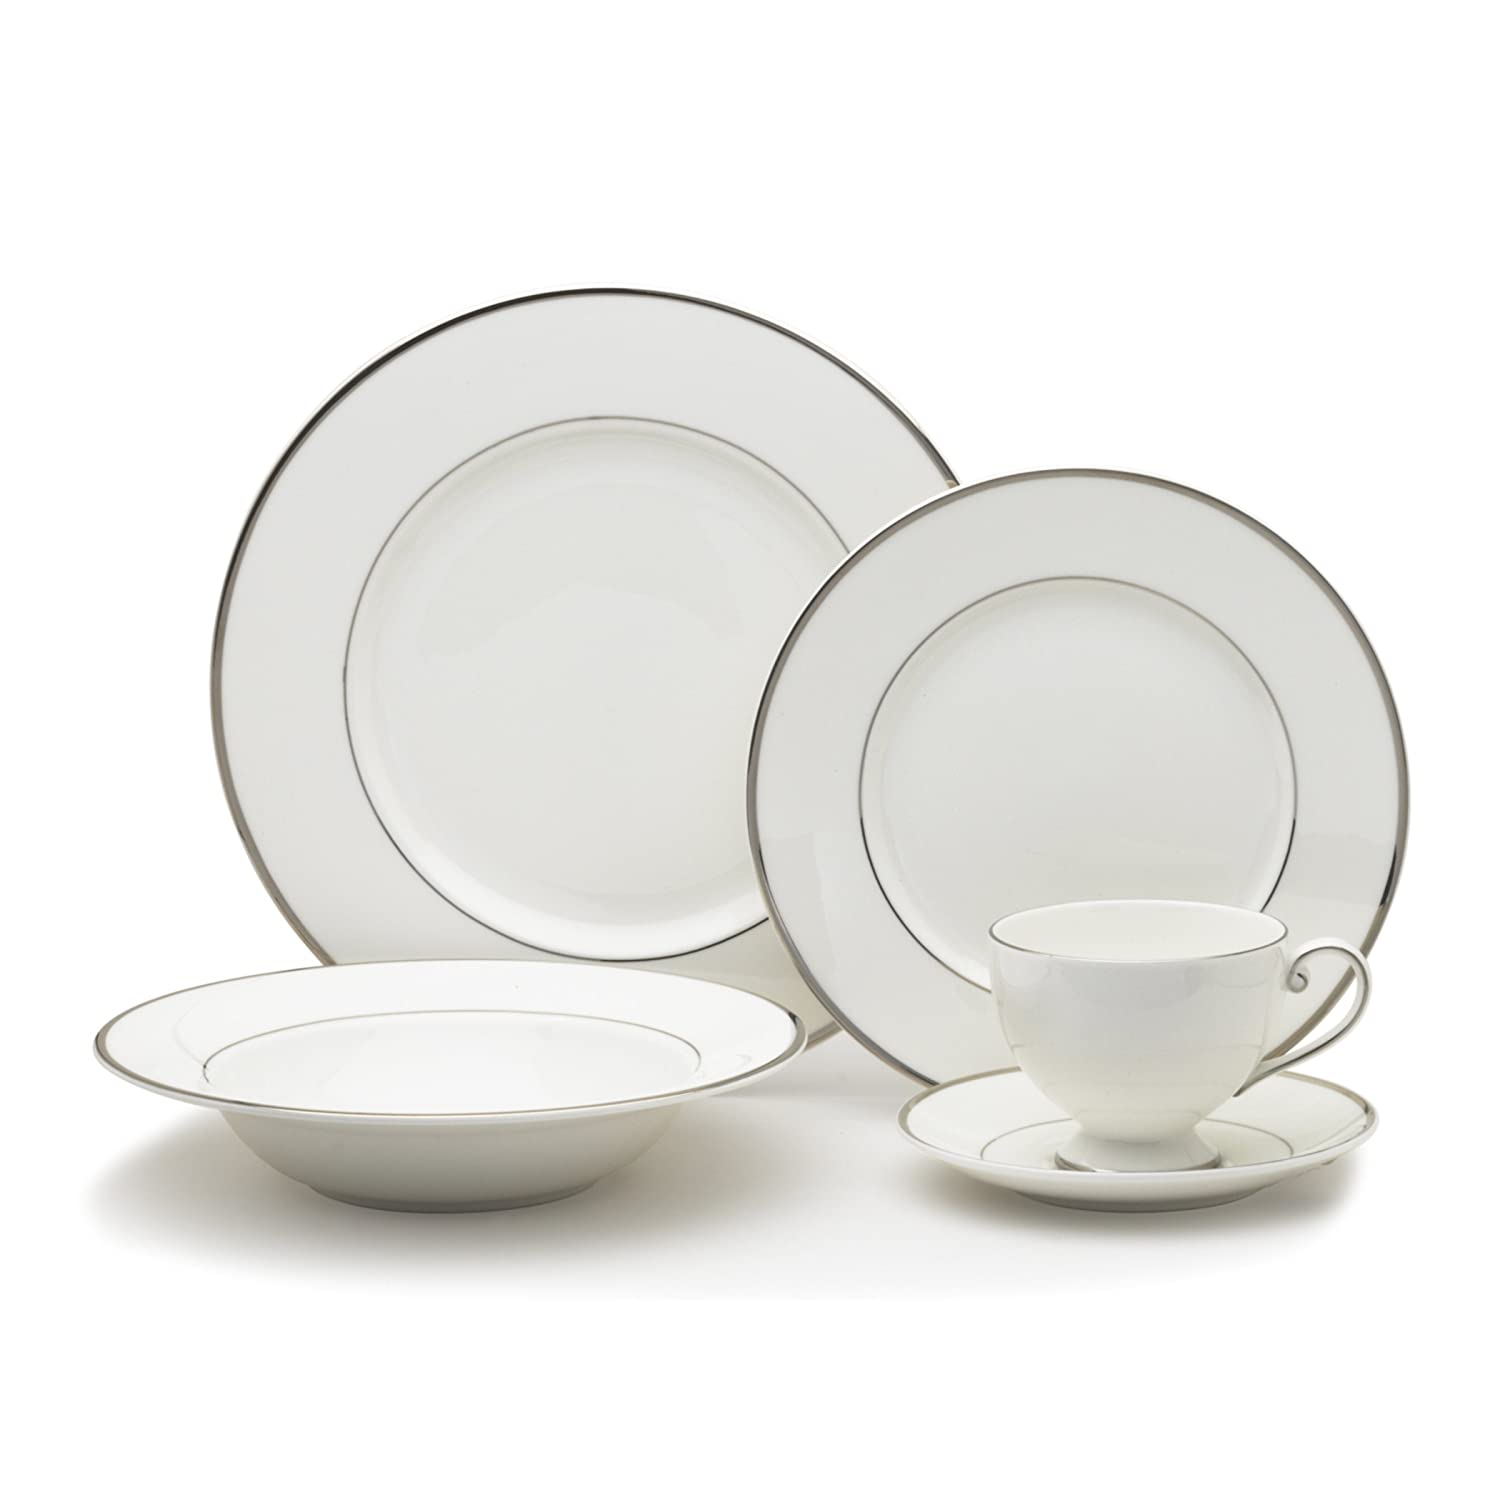 Mikasa Cameo Platinum 40-Piece Dinnerware Set, Service for 8